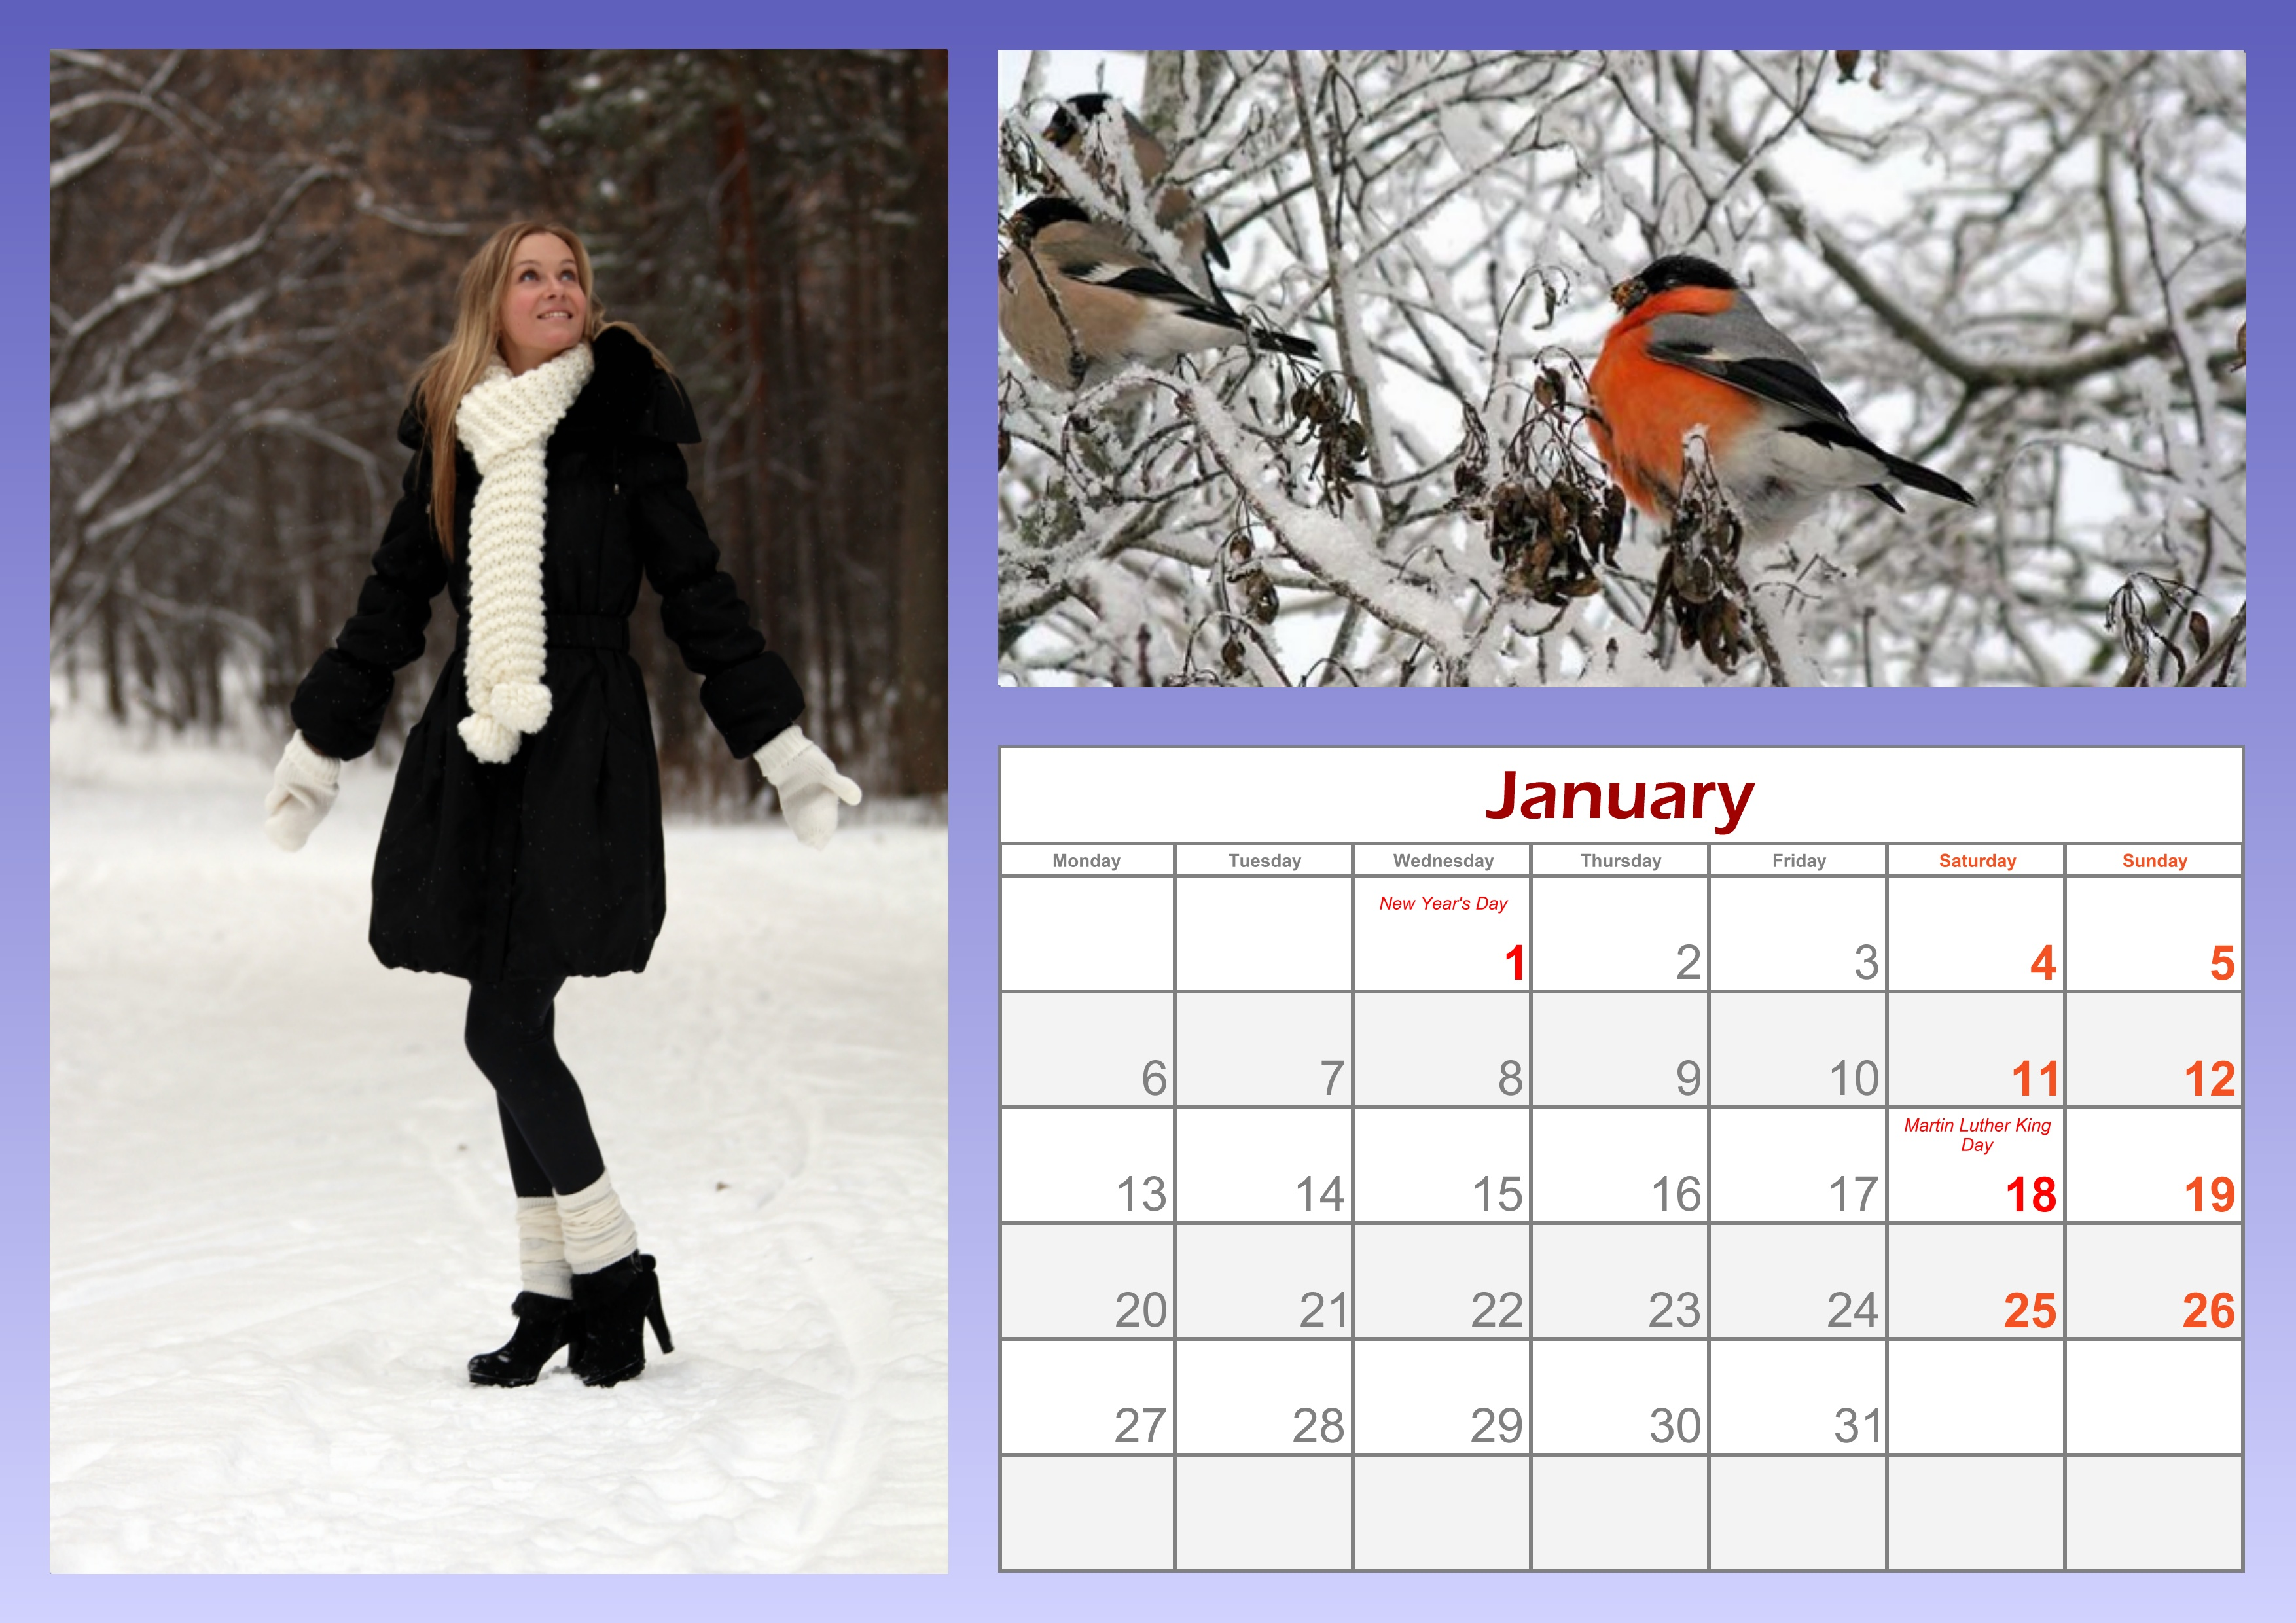 Sample Of Calendar Design : Samples of calendar design template